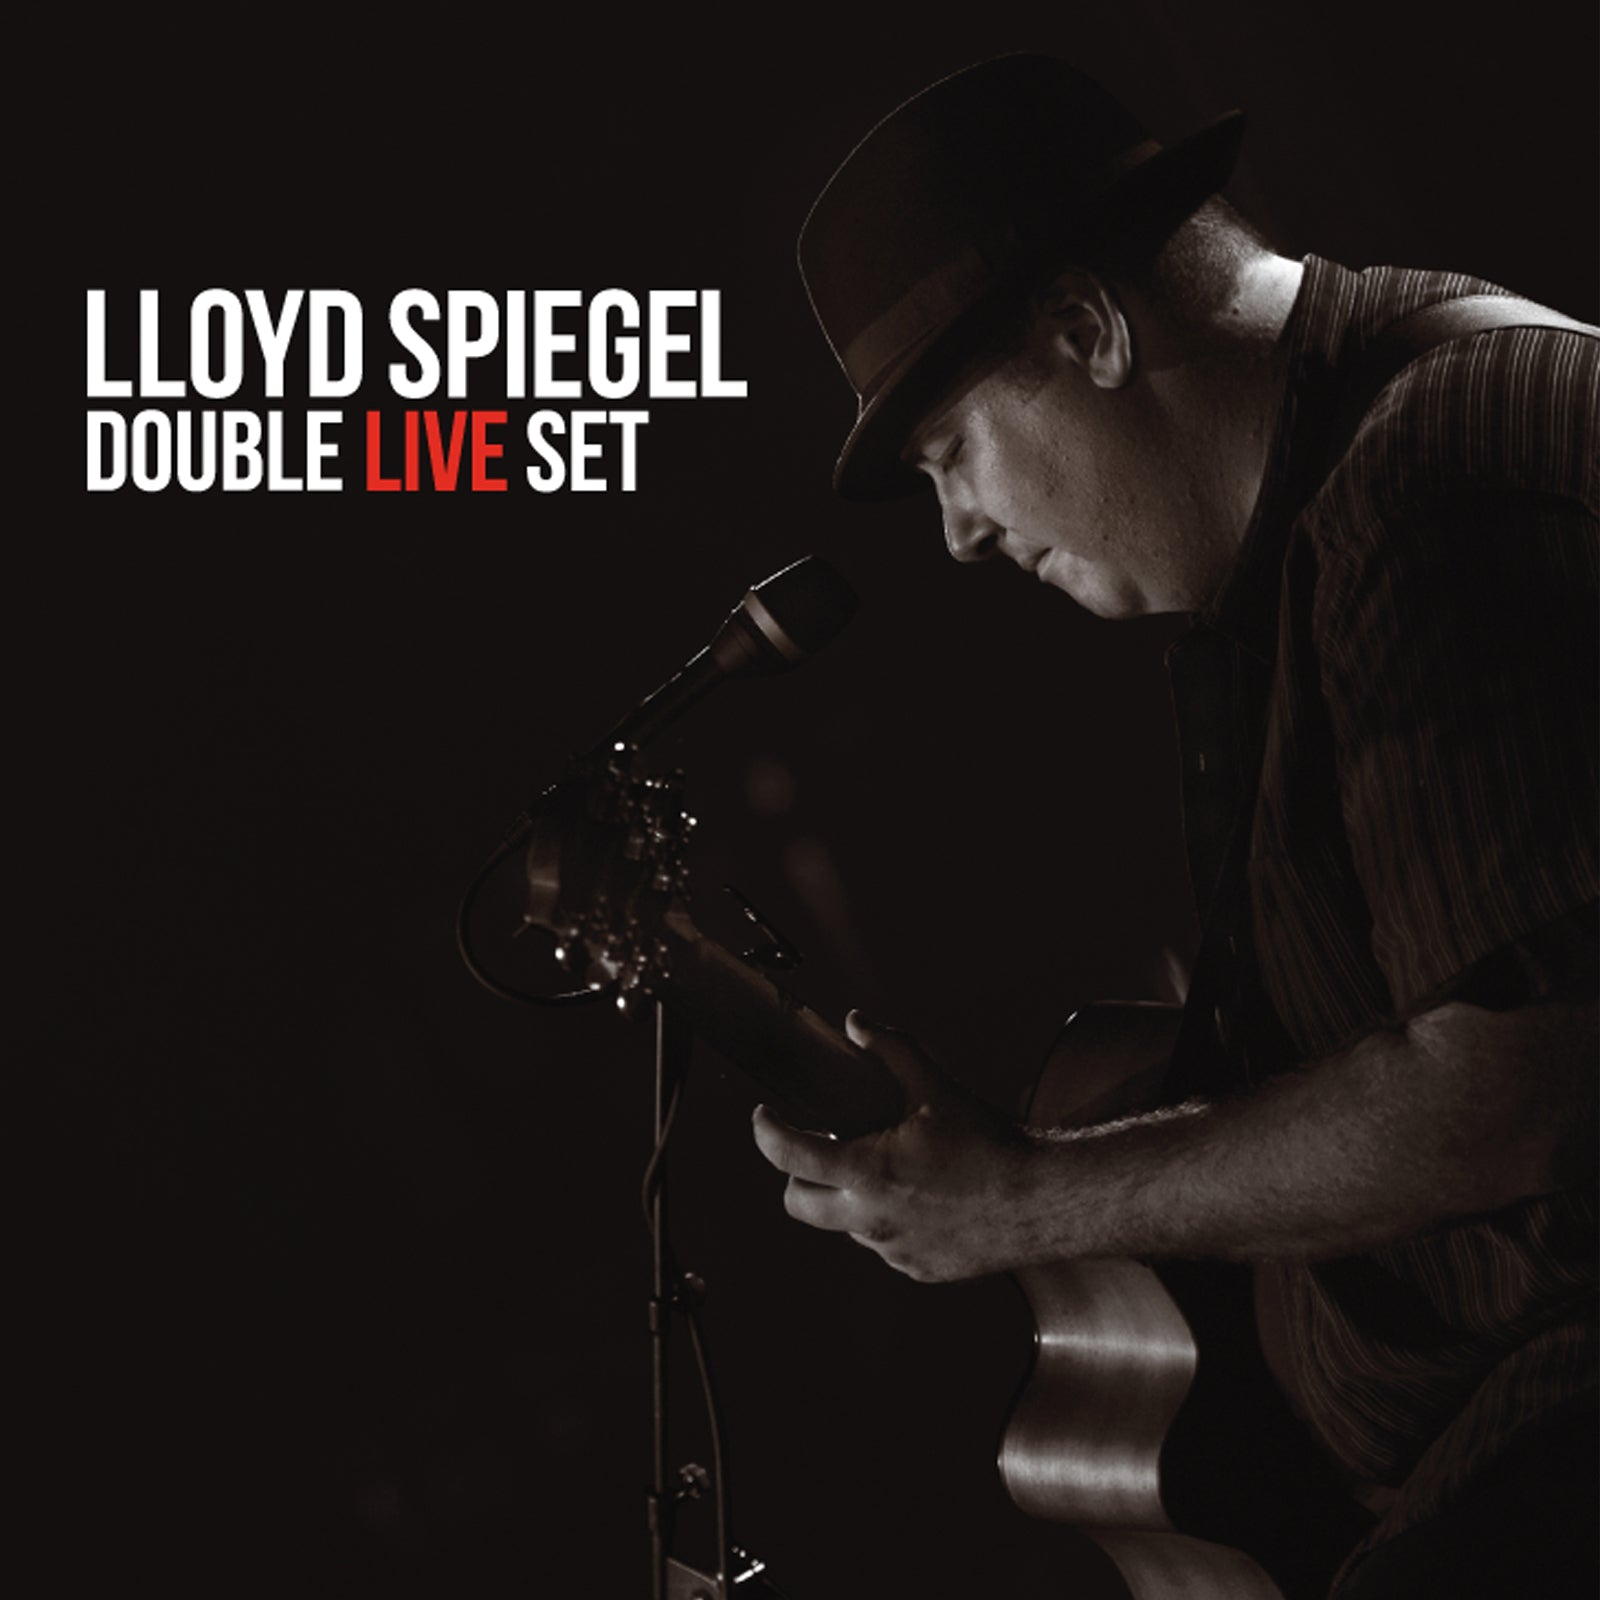 Double Live Set (2015) - Digital Download